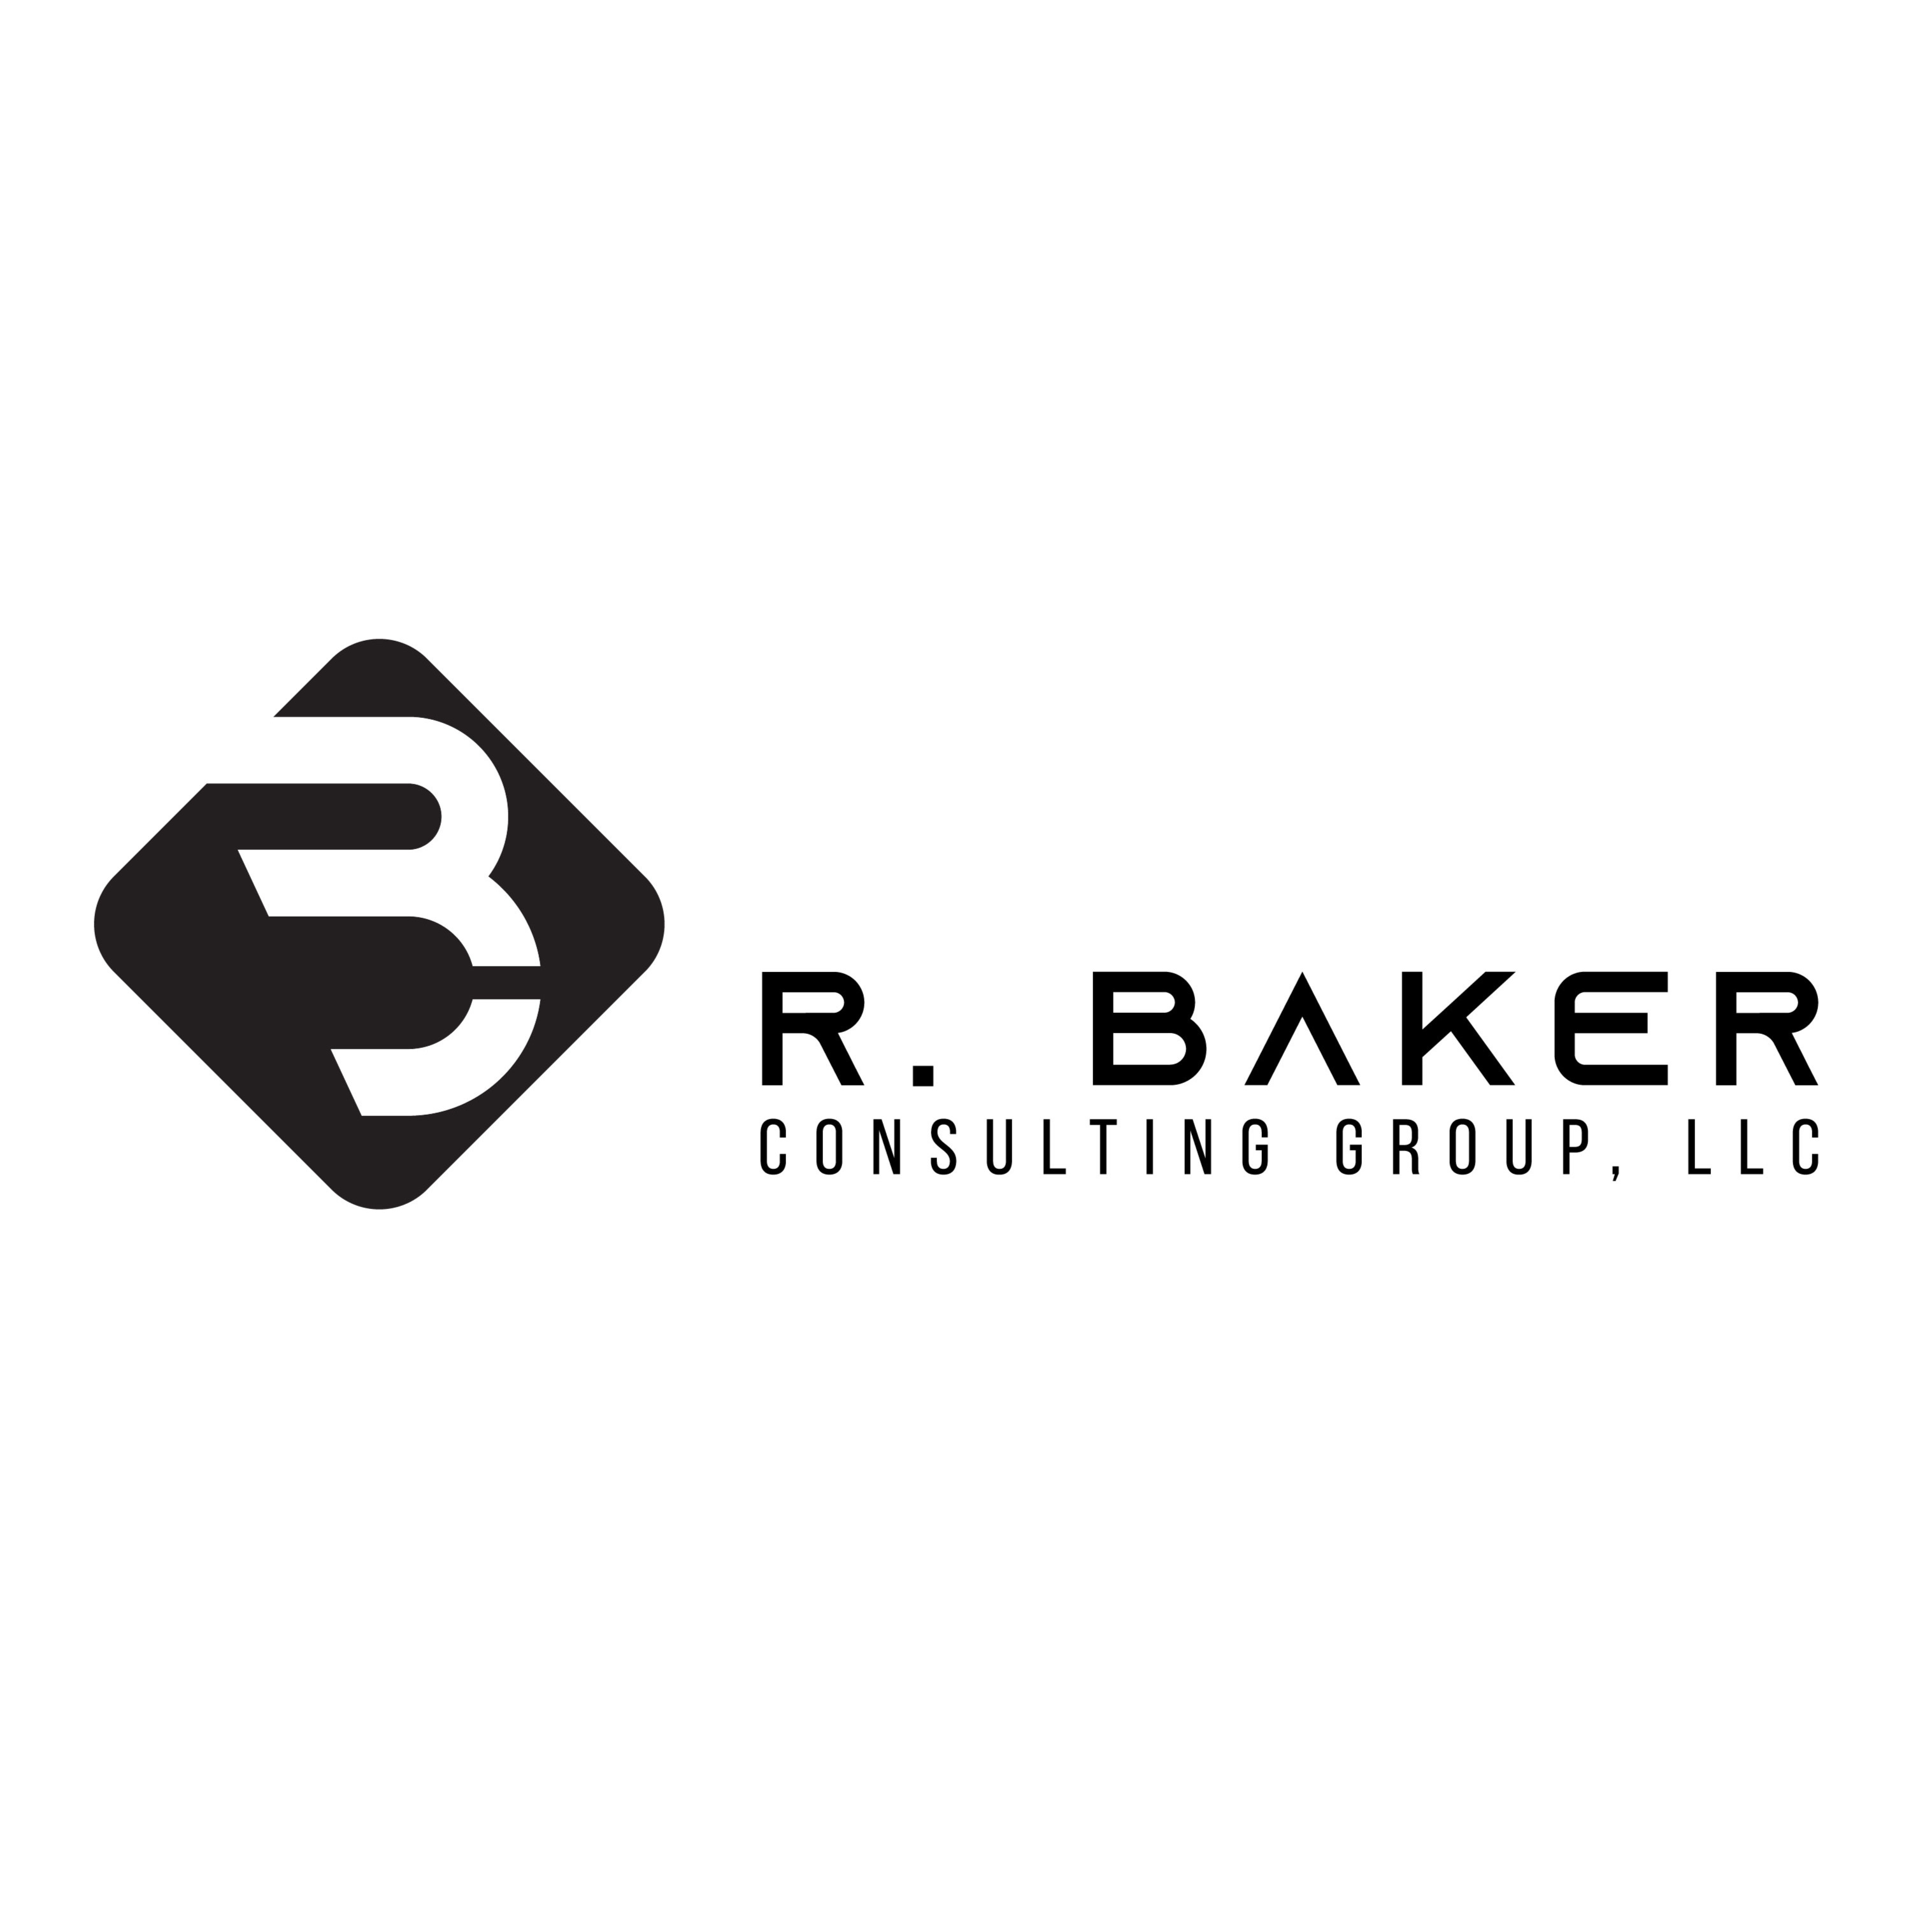 R. Baker Consulting Group, LLC